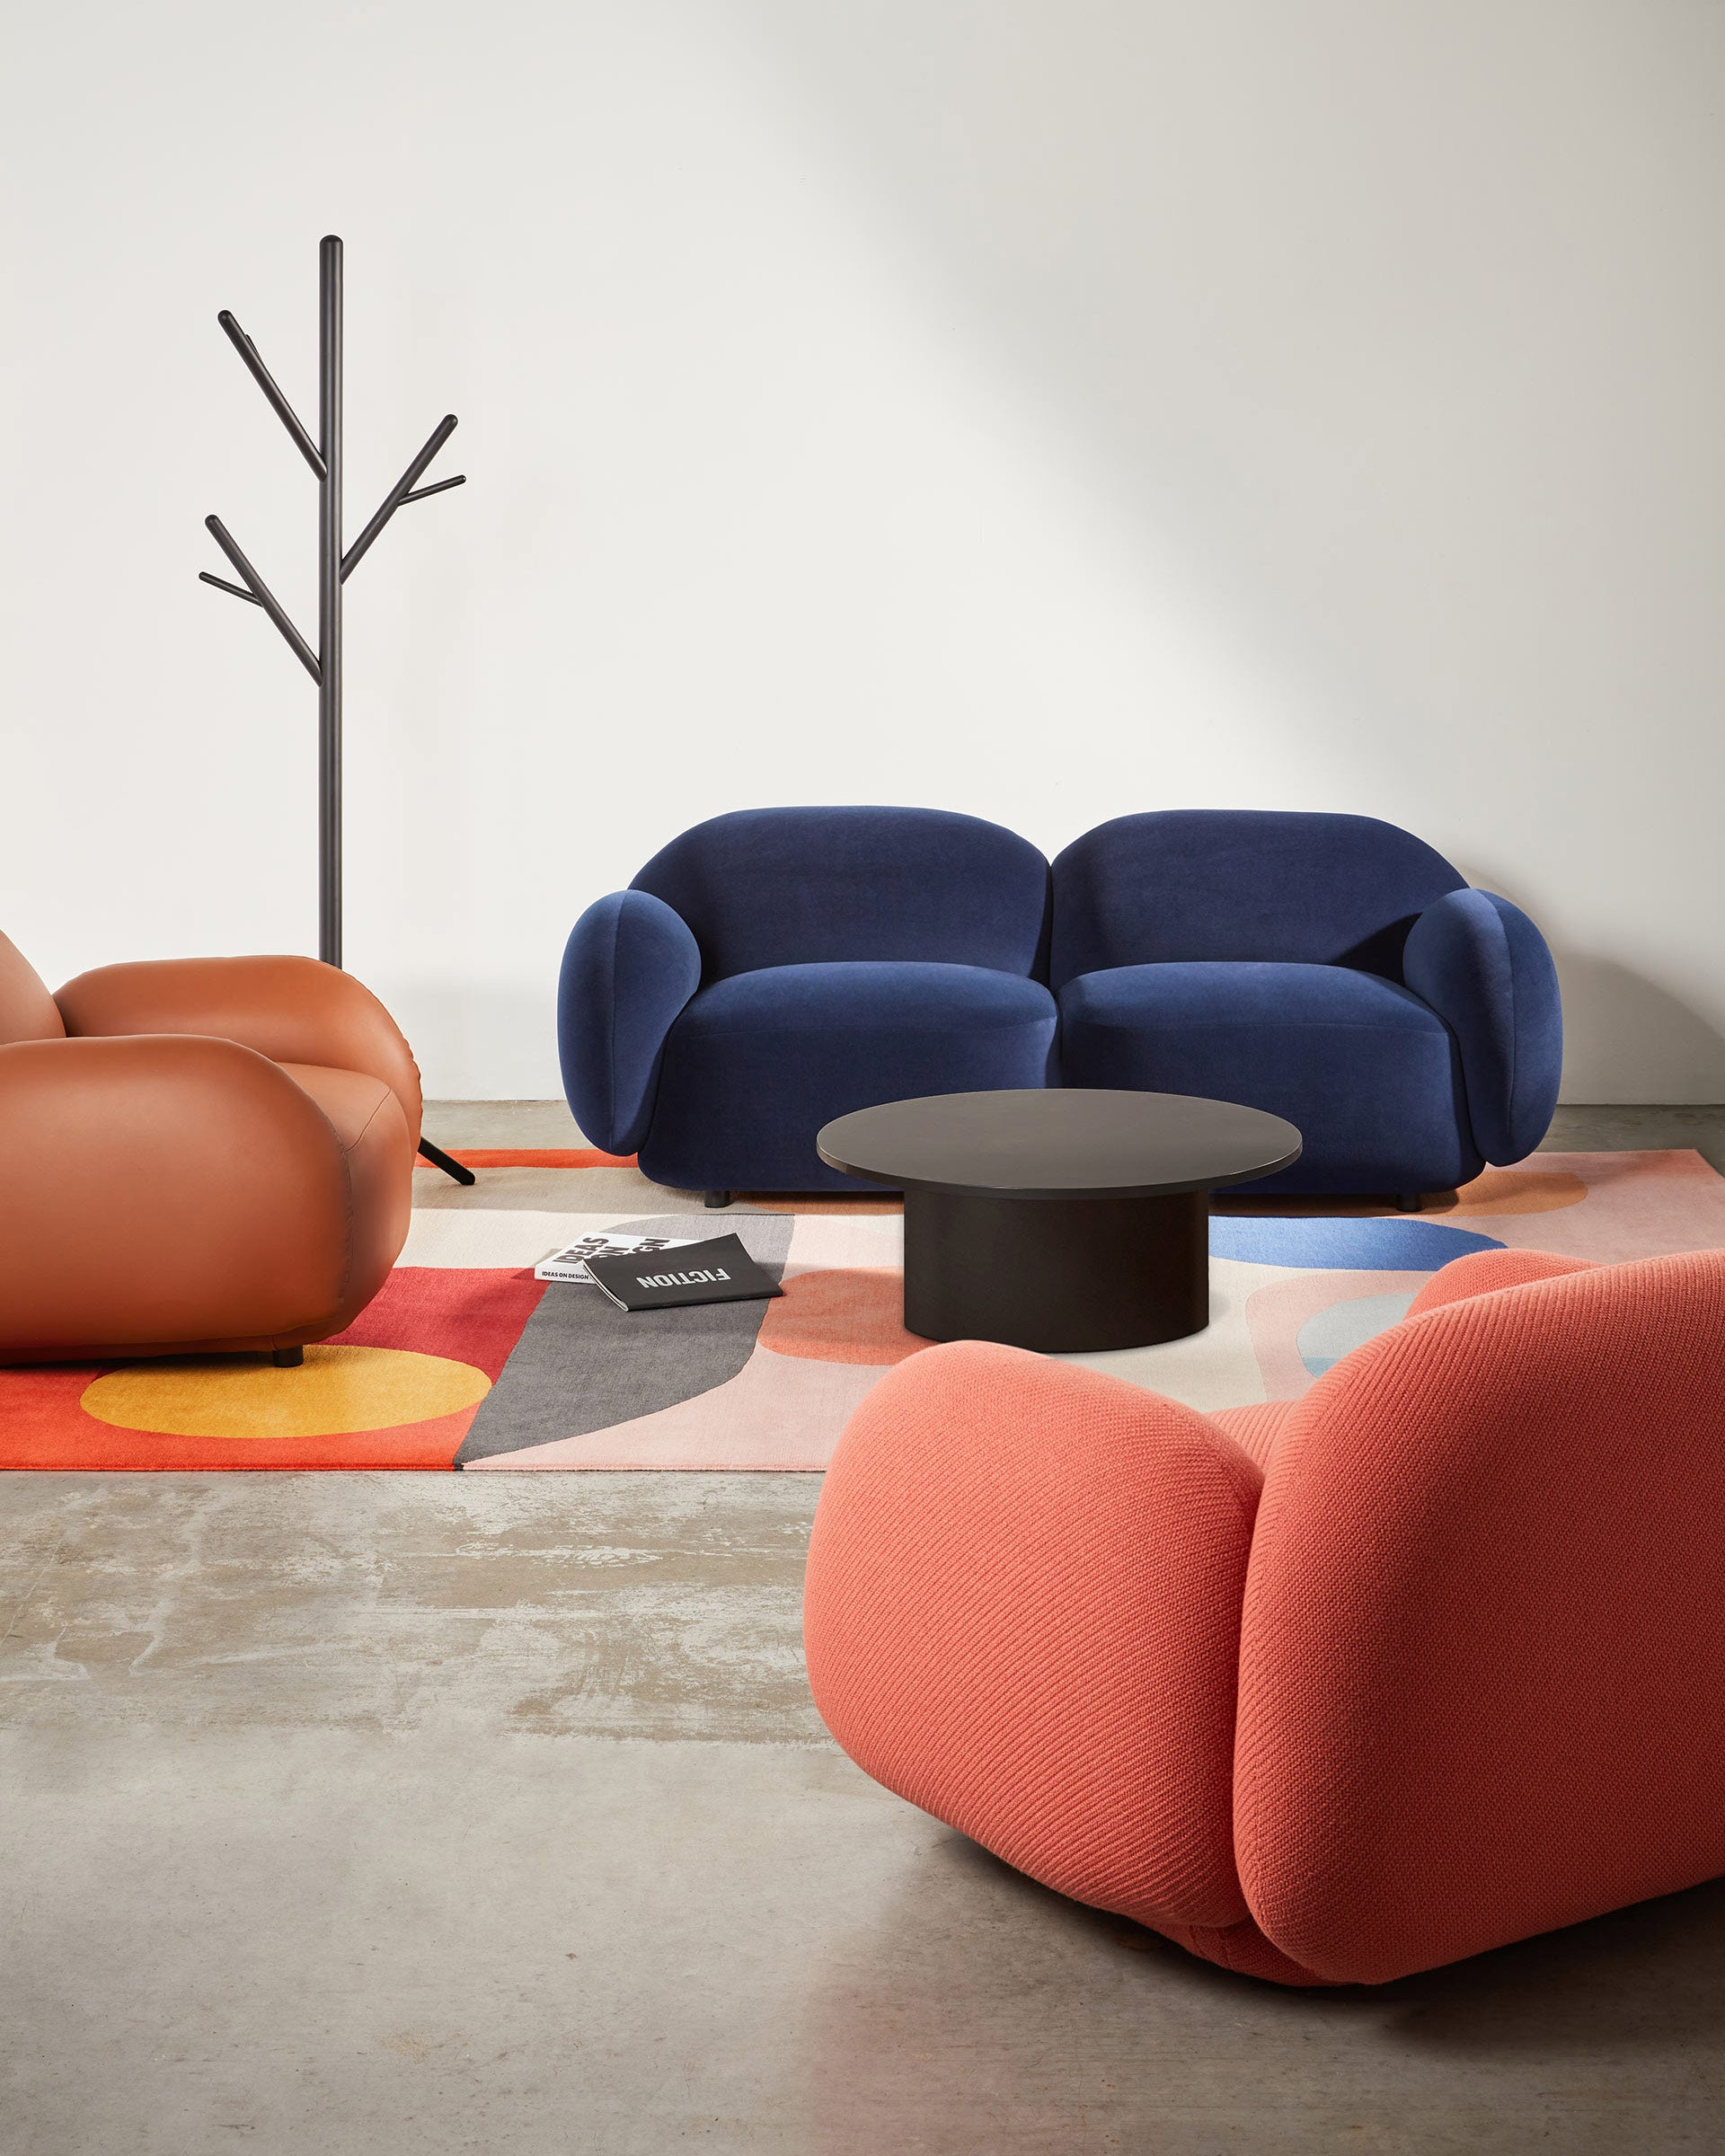 Sundae Armchairs & Lounges   Upholstered Home and Commercial Seating   Jason Ju   DesignByThem